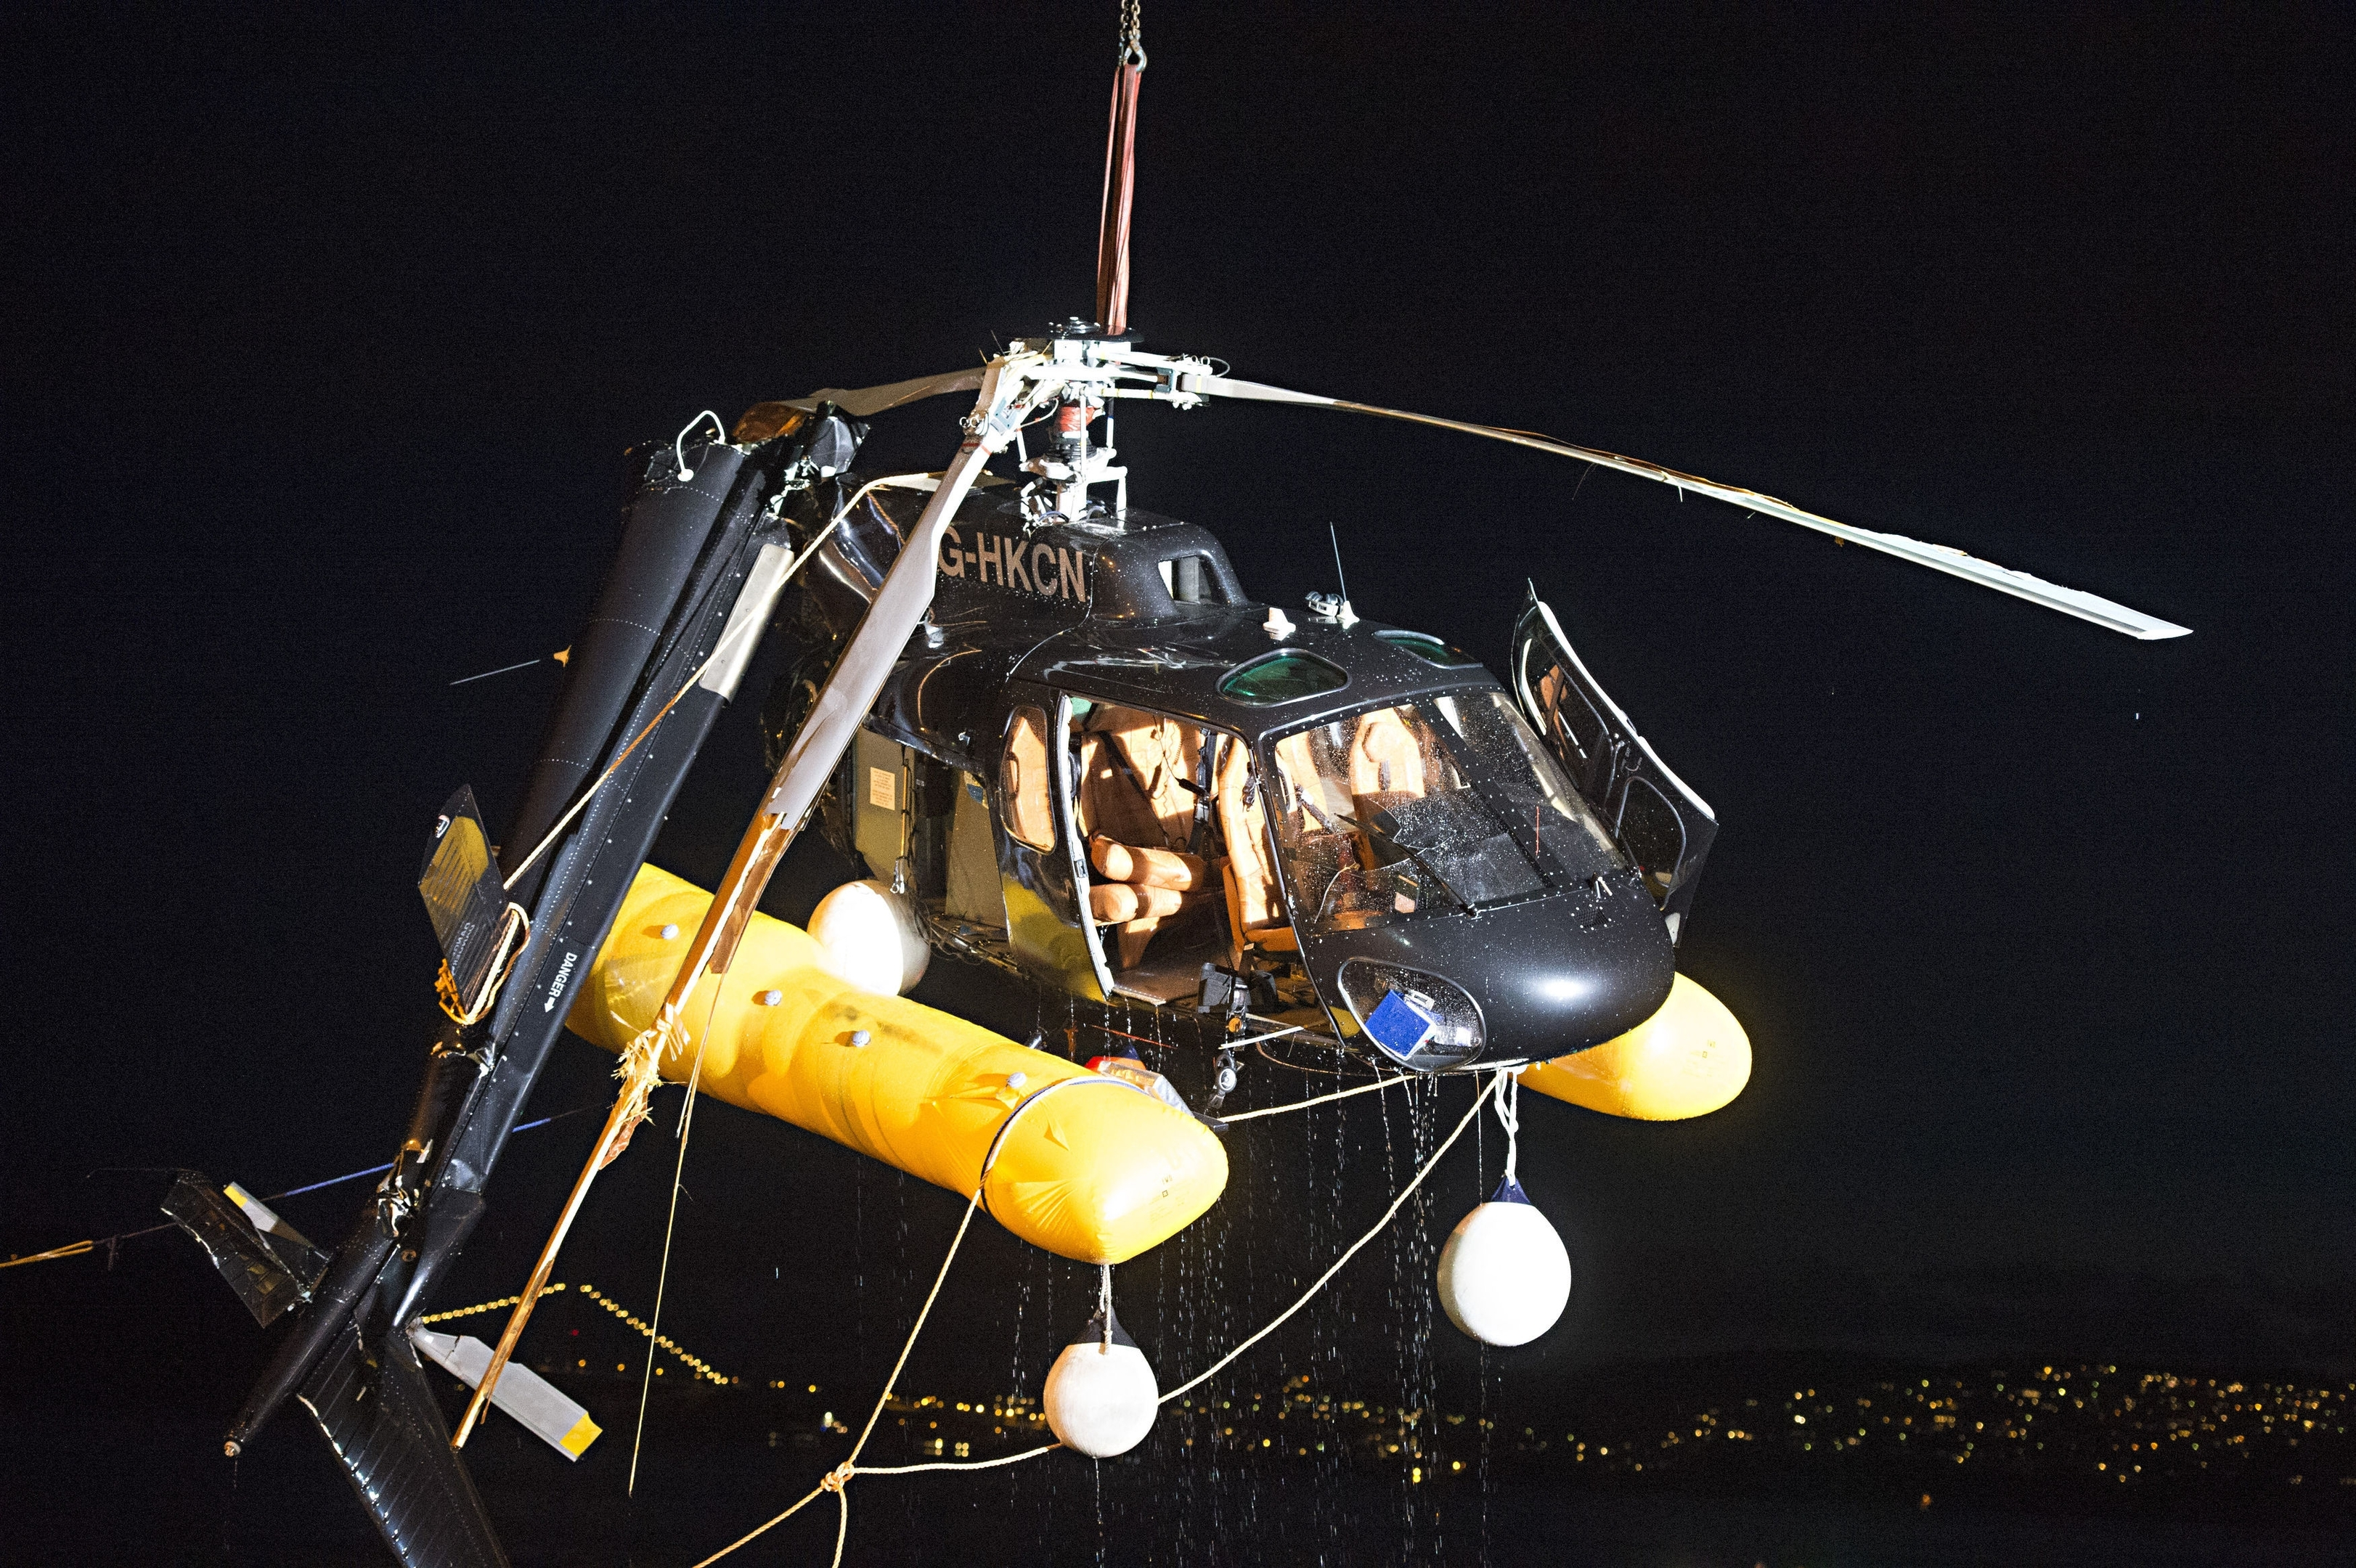 A helicopter which crashed into the sea near Bergen harbour, western Norway, is seen being lifted out from the water in the early hours of Thursday May 11, 2017.